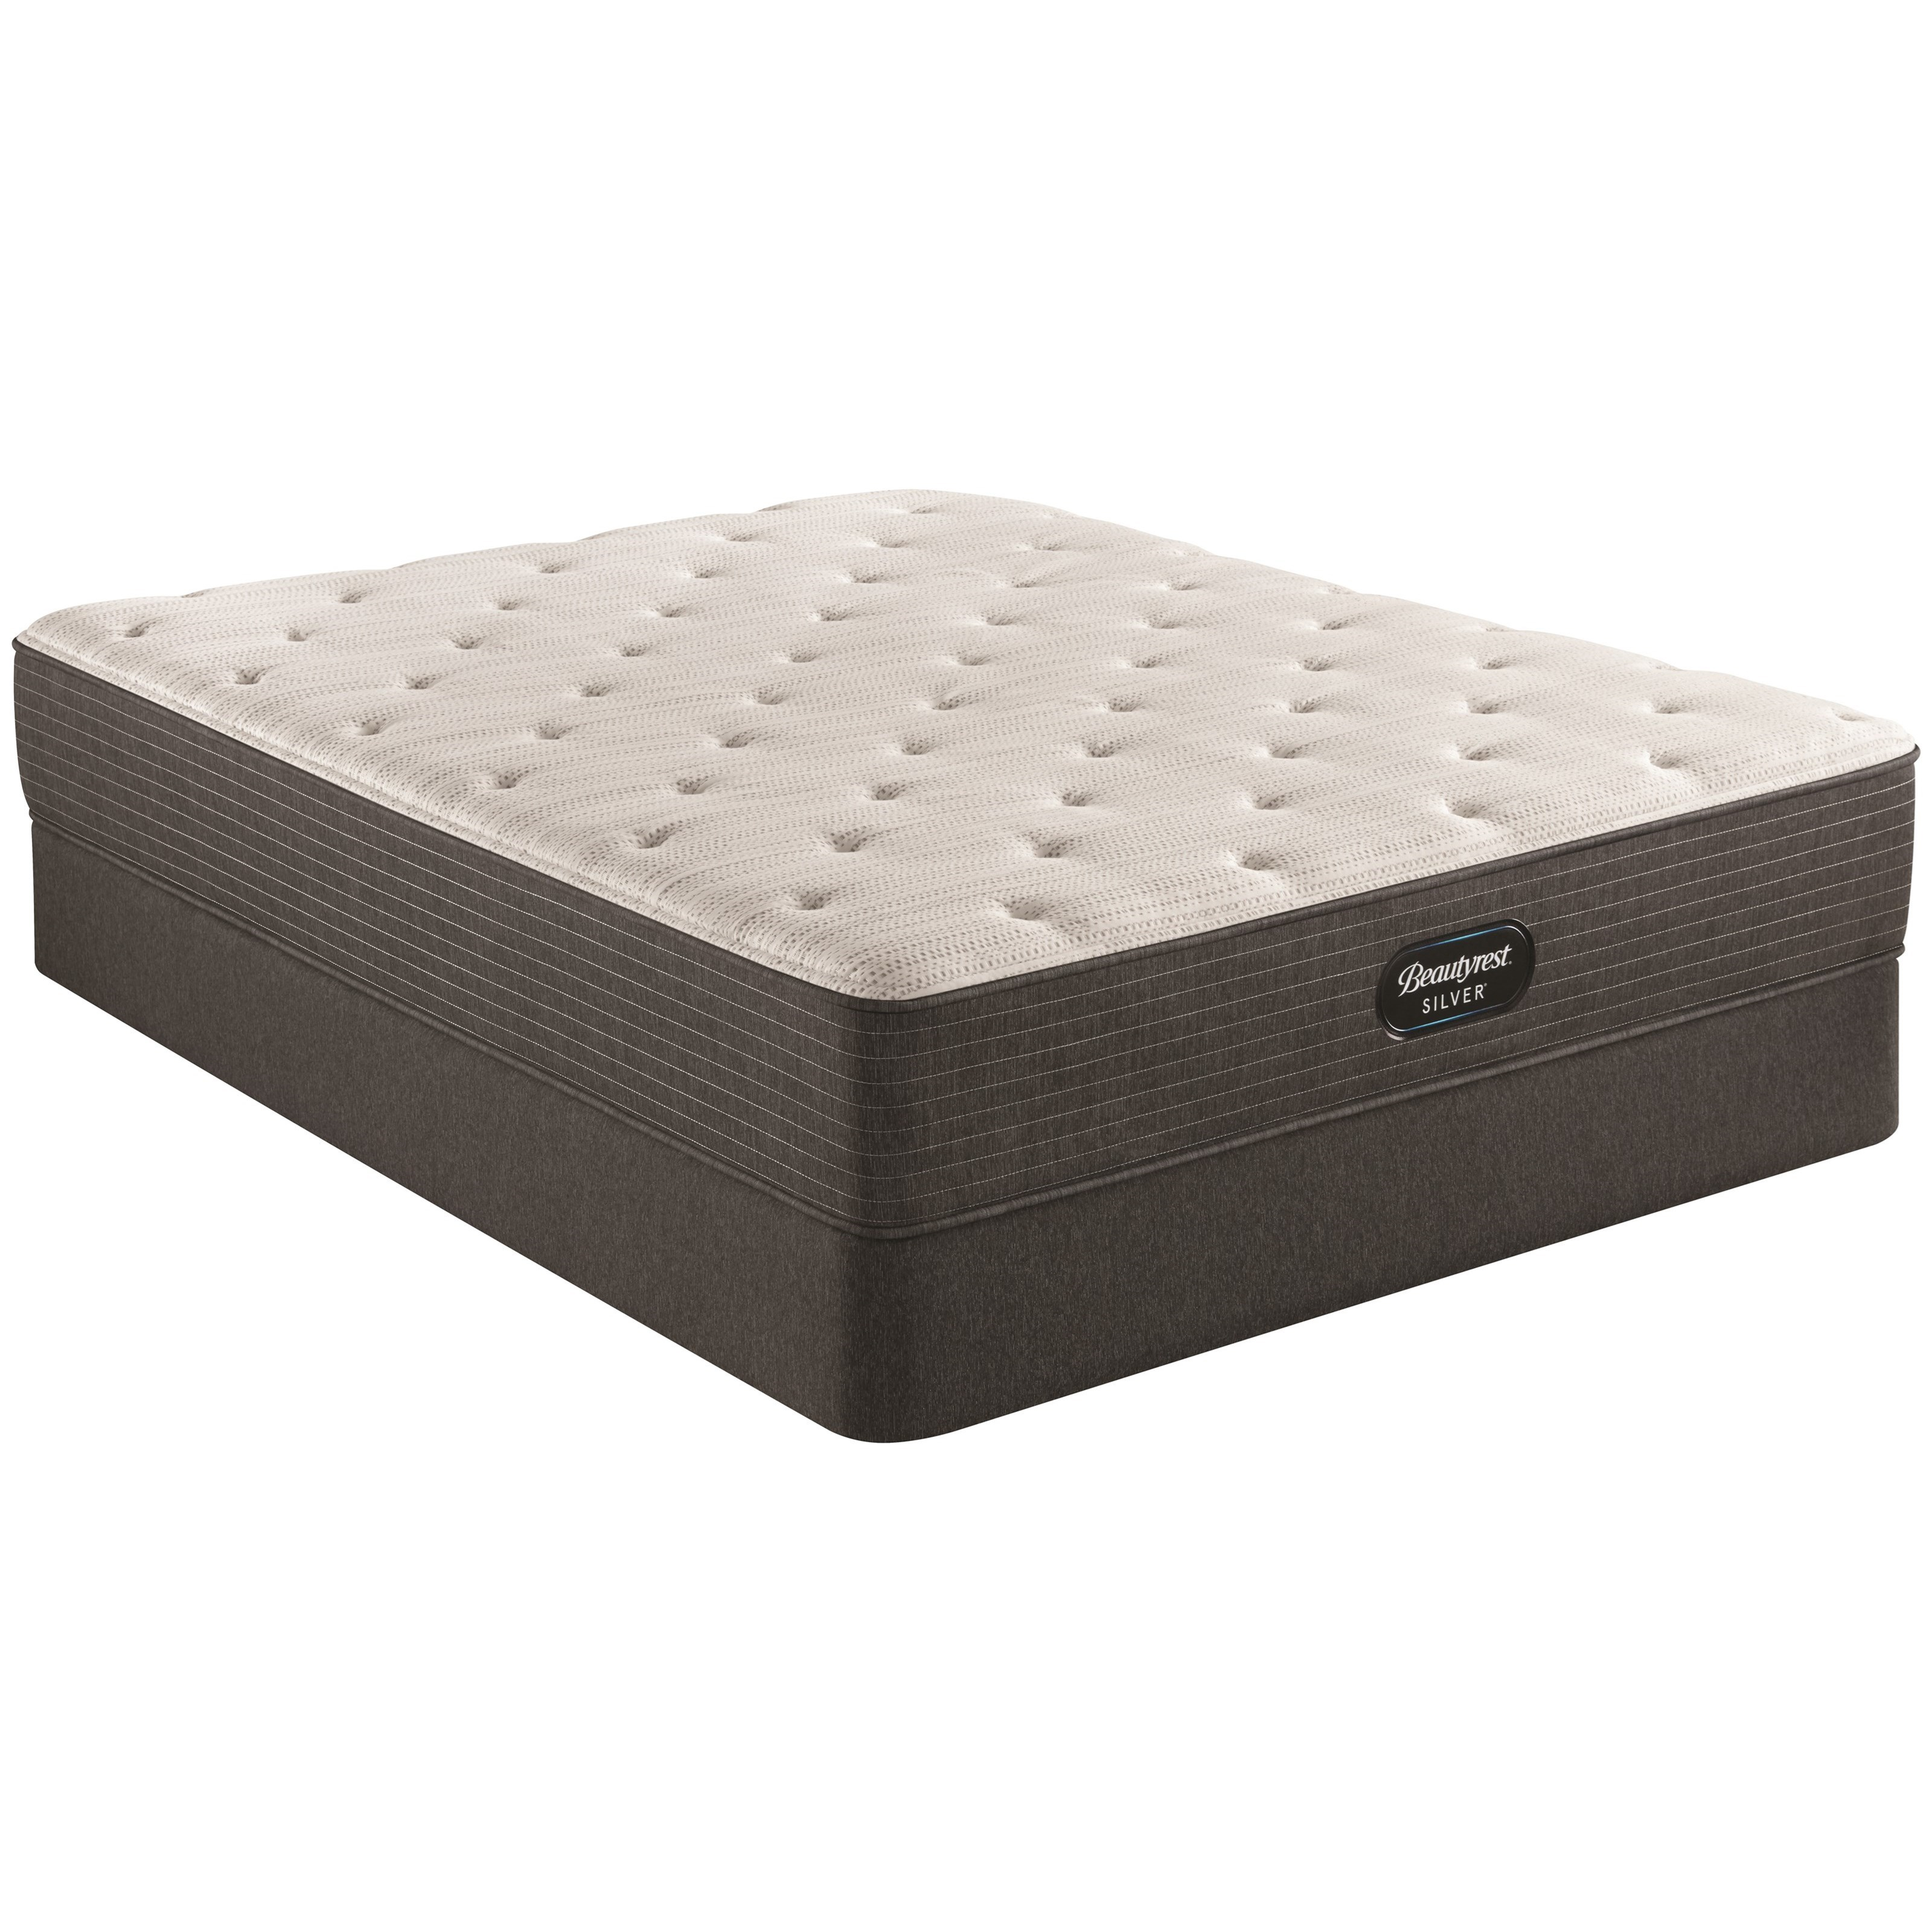 "BRS900 Medium Twin XL 12"" Pocketed Coil Mattress Set by Beautyrest at HomeWorld Furniture"